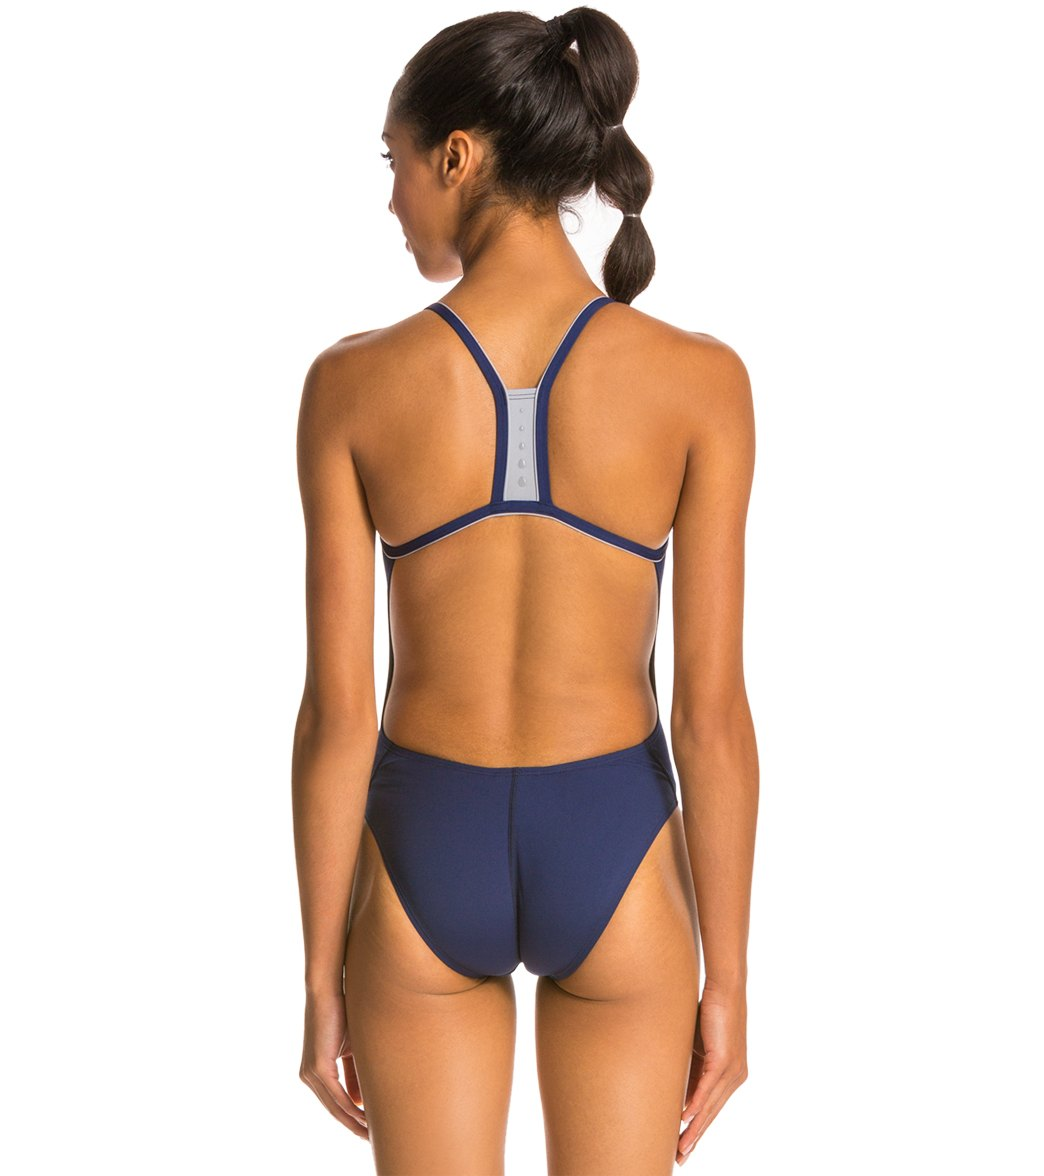 4769edbe4476a Speedo Solid Endurance + Thin Strap Swimsuit at SwimOutlet.com ...